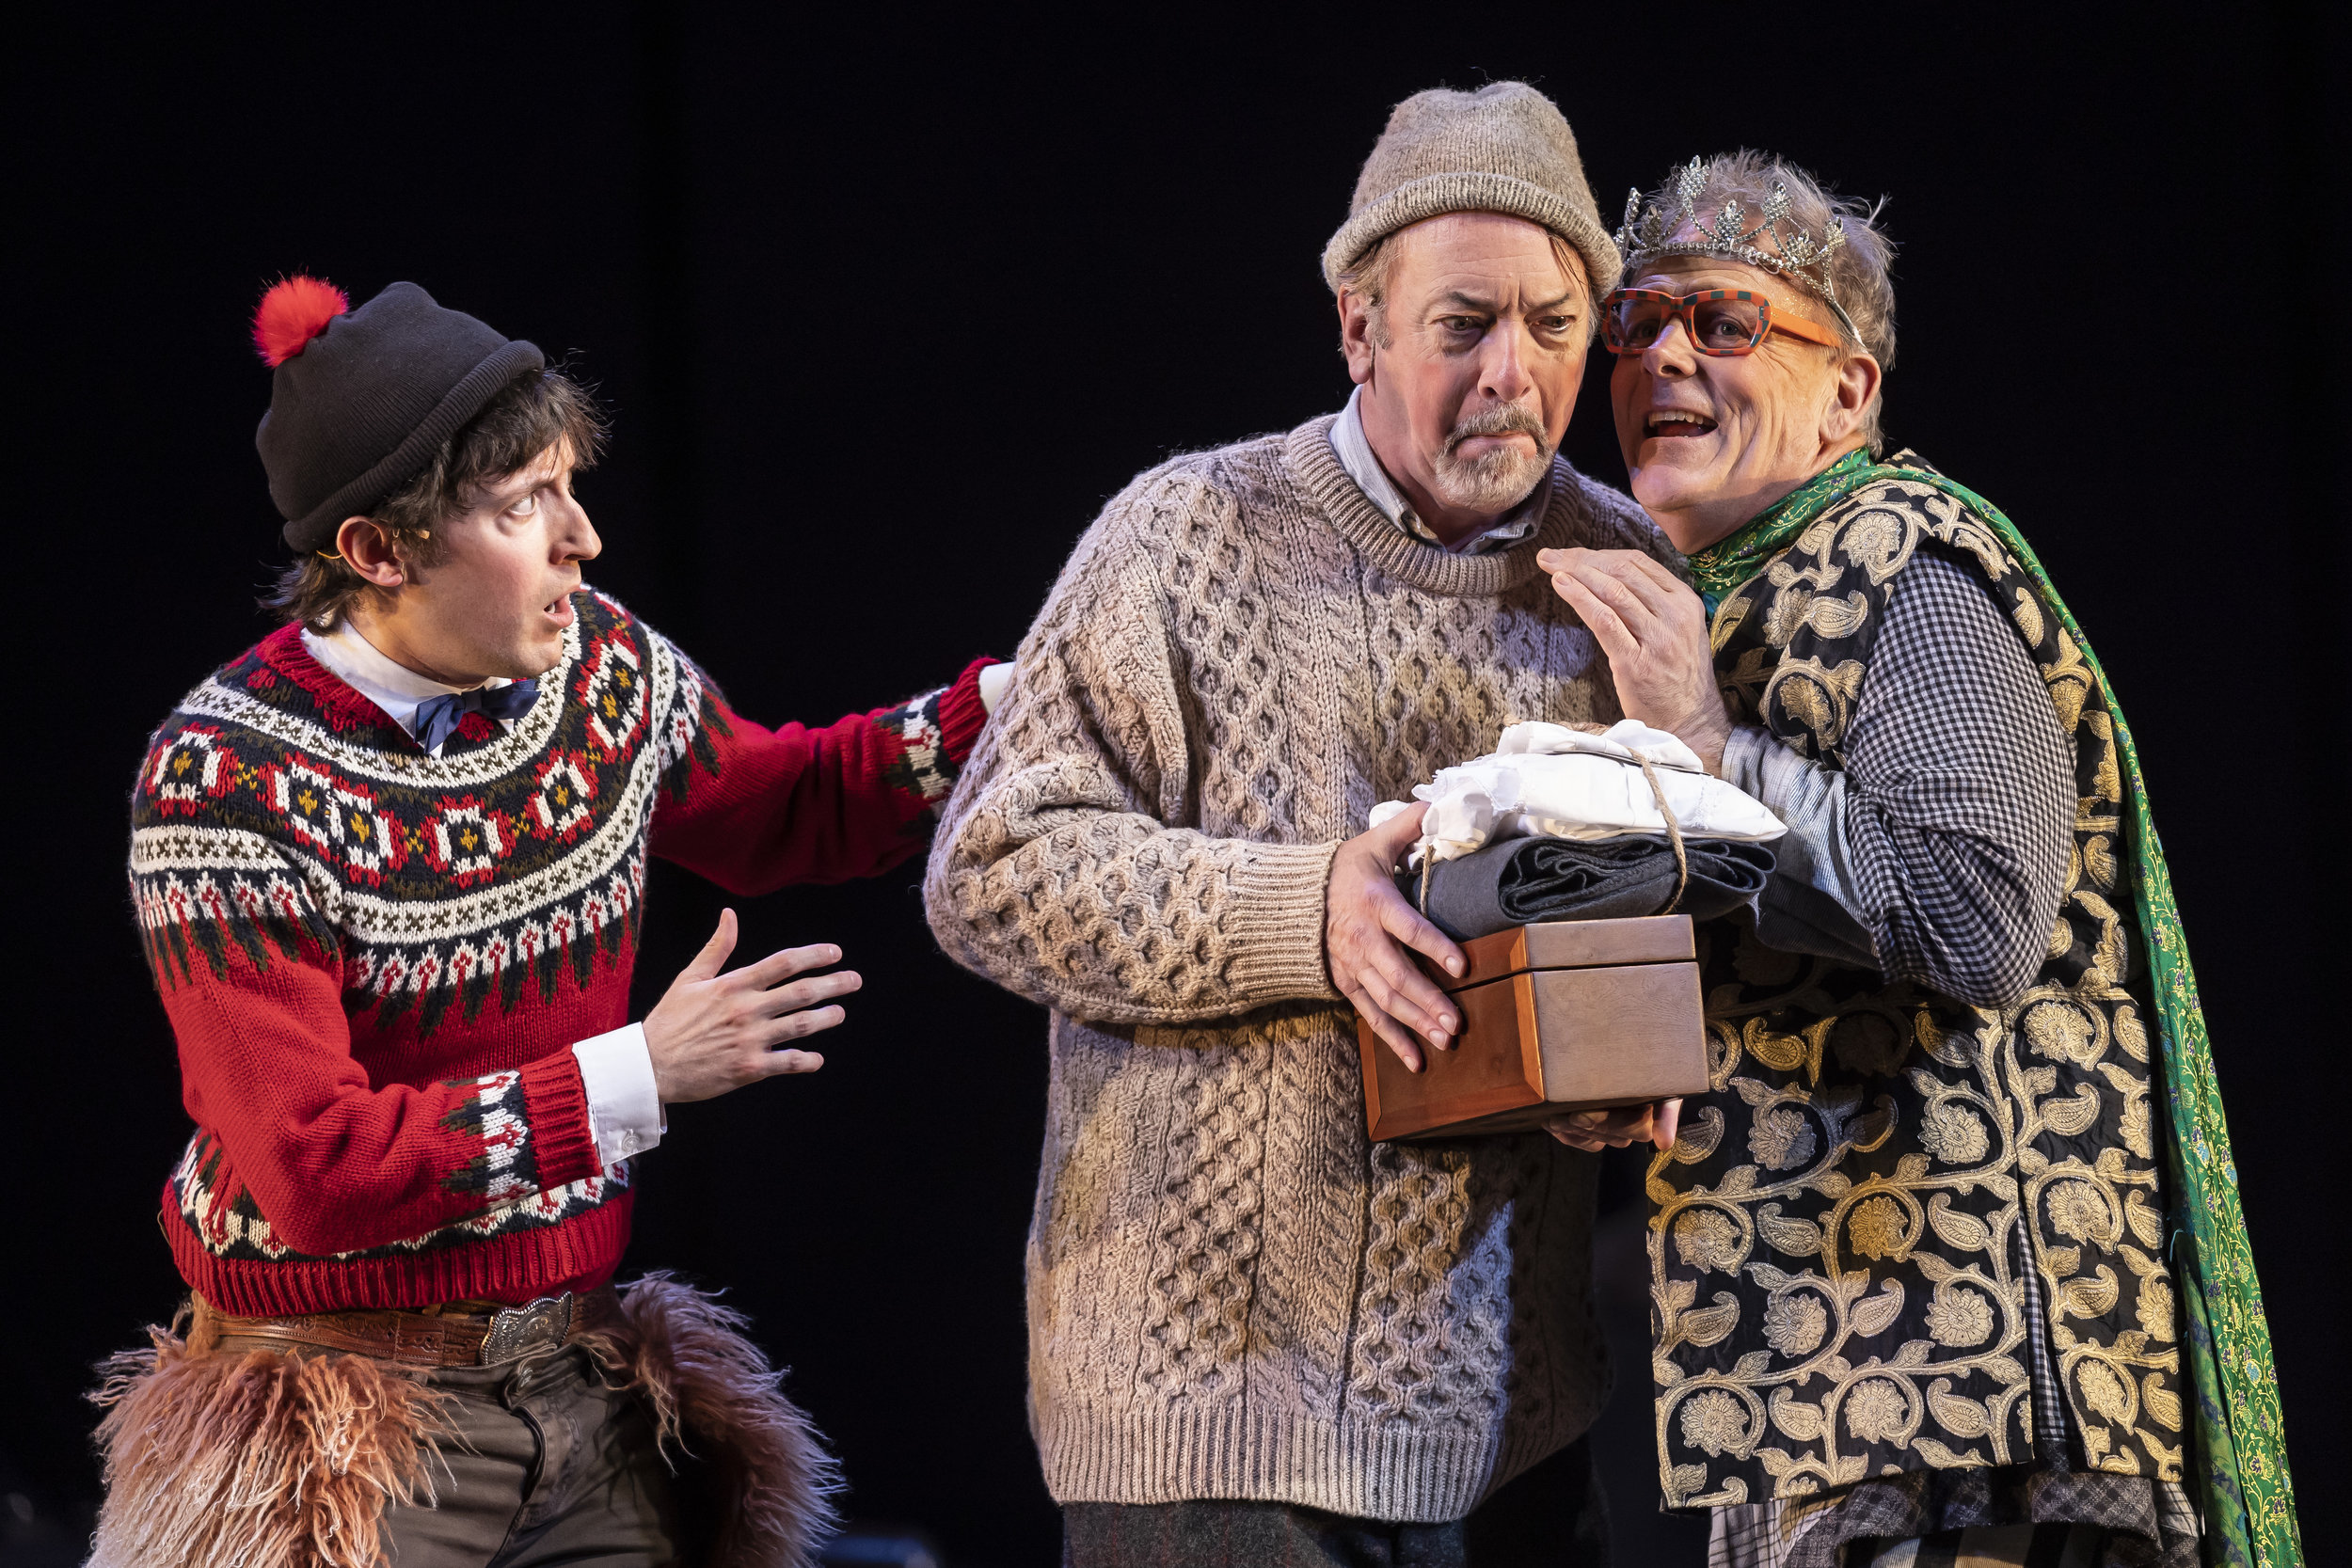 Will Allan  (Clown),  Tim Monsion  (Old Shepherd) and  Philip Earl Johnson  (Autolycus) in  The Winter's Tale  by William Shakespeare, directed by Robert Falls.